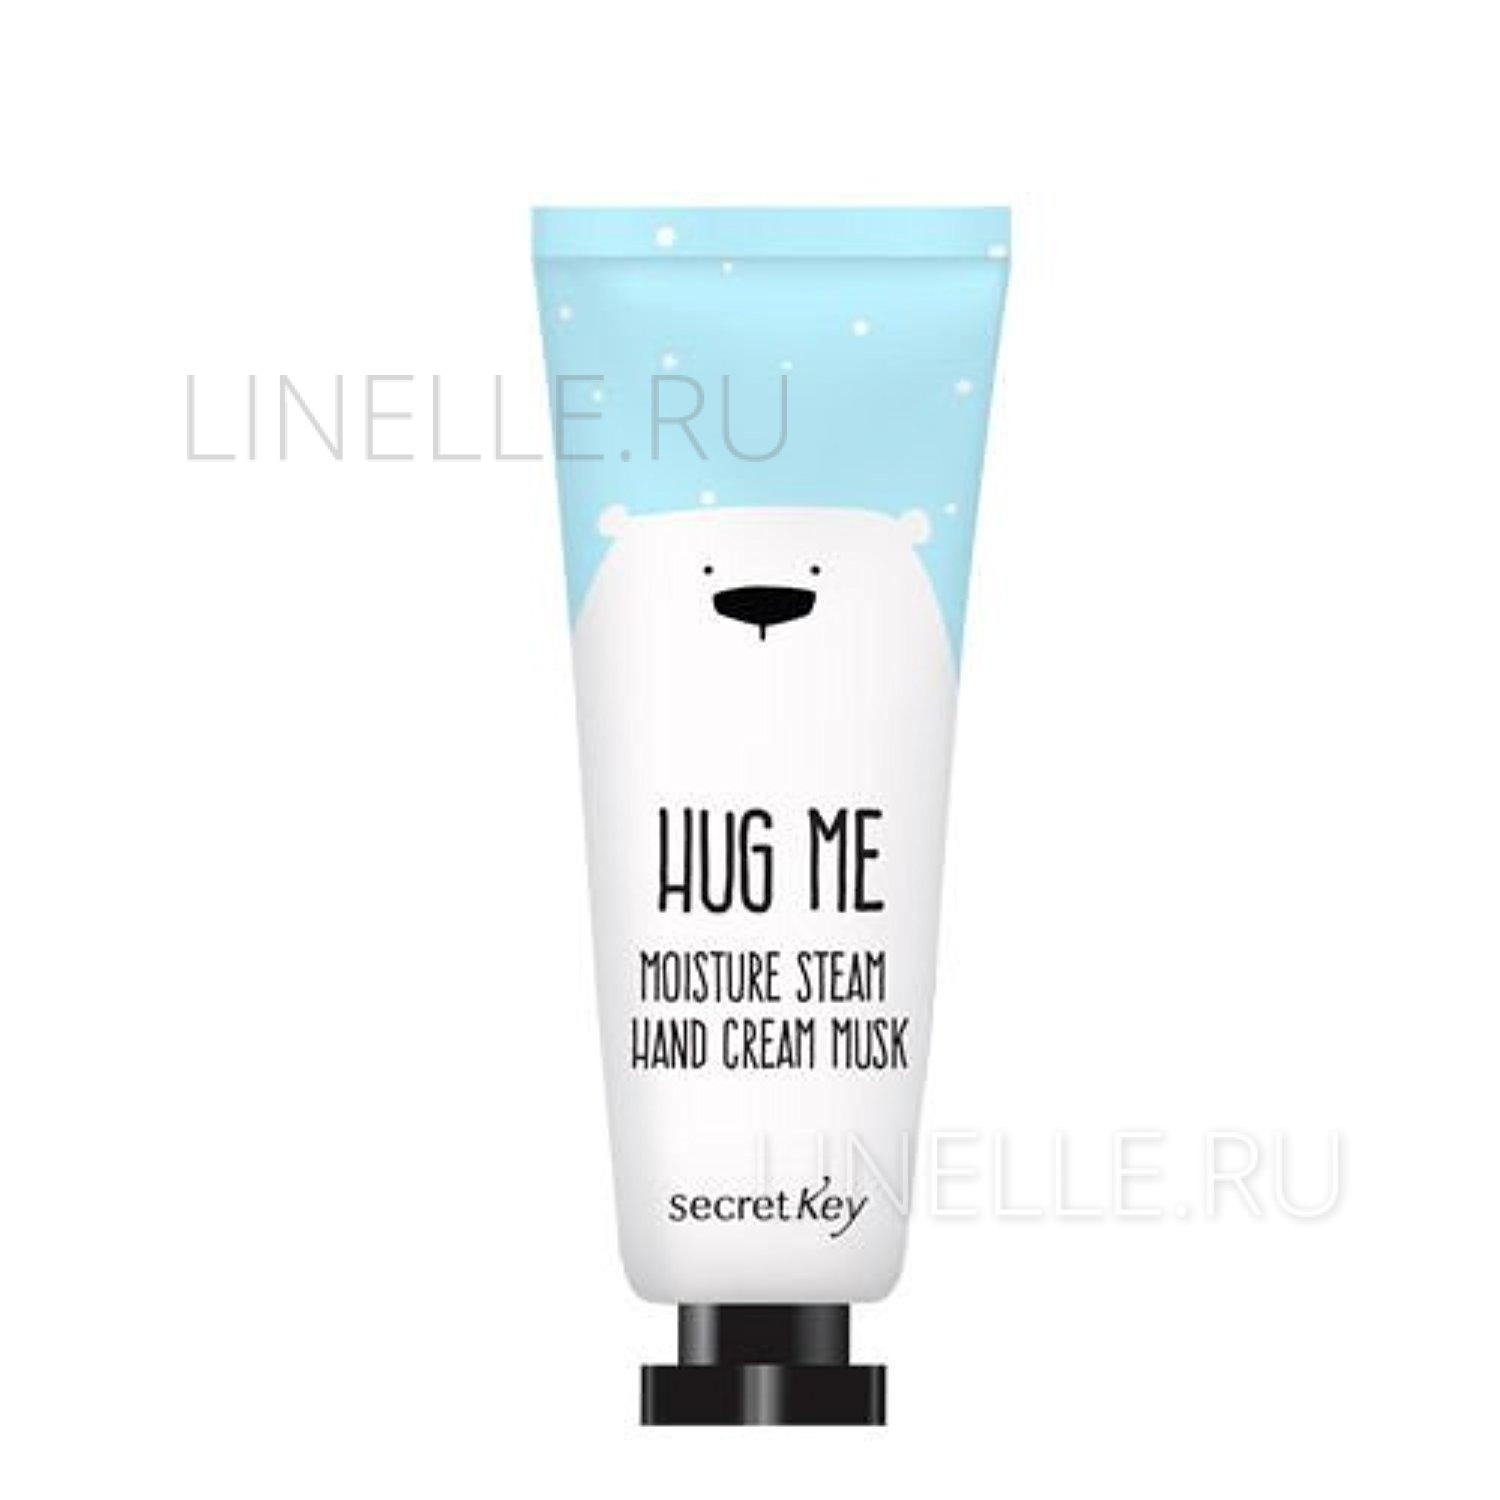 SECRET KEY Hug me moisture steam hand cream musk